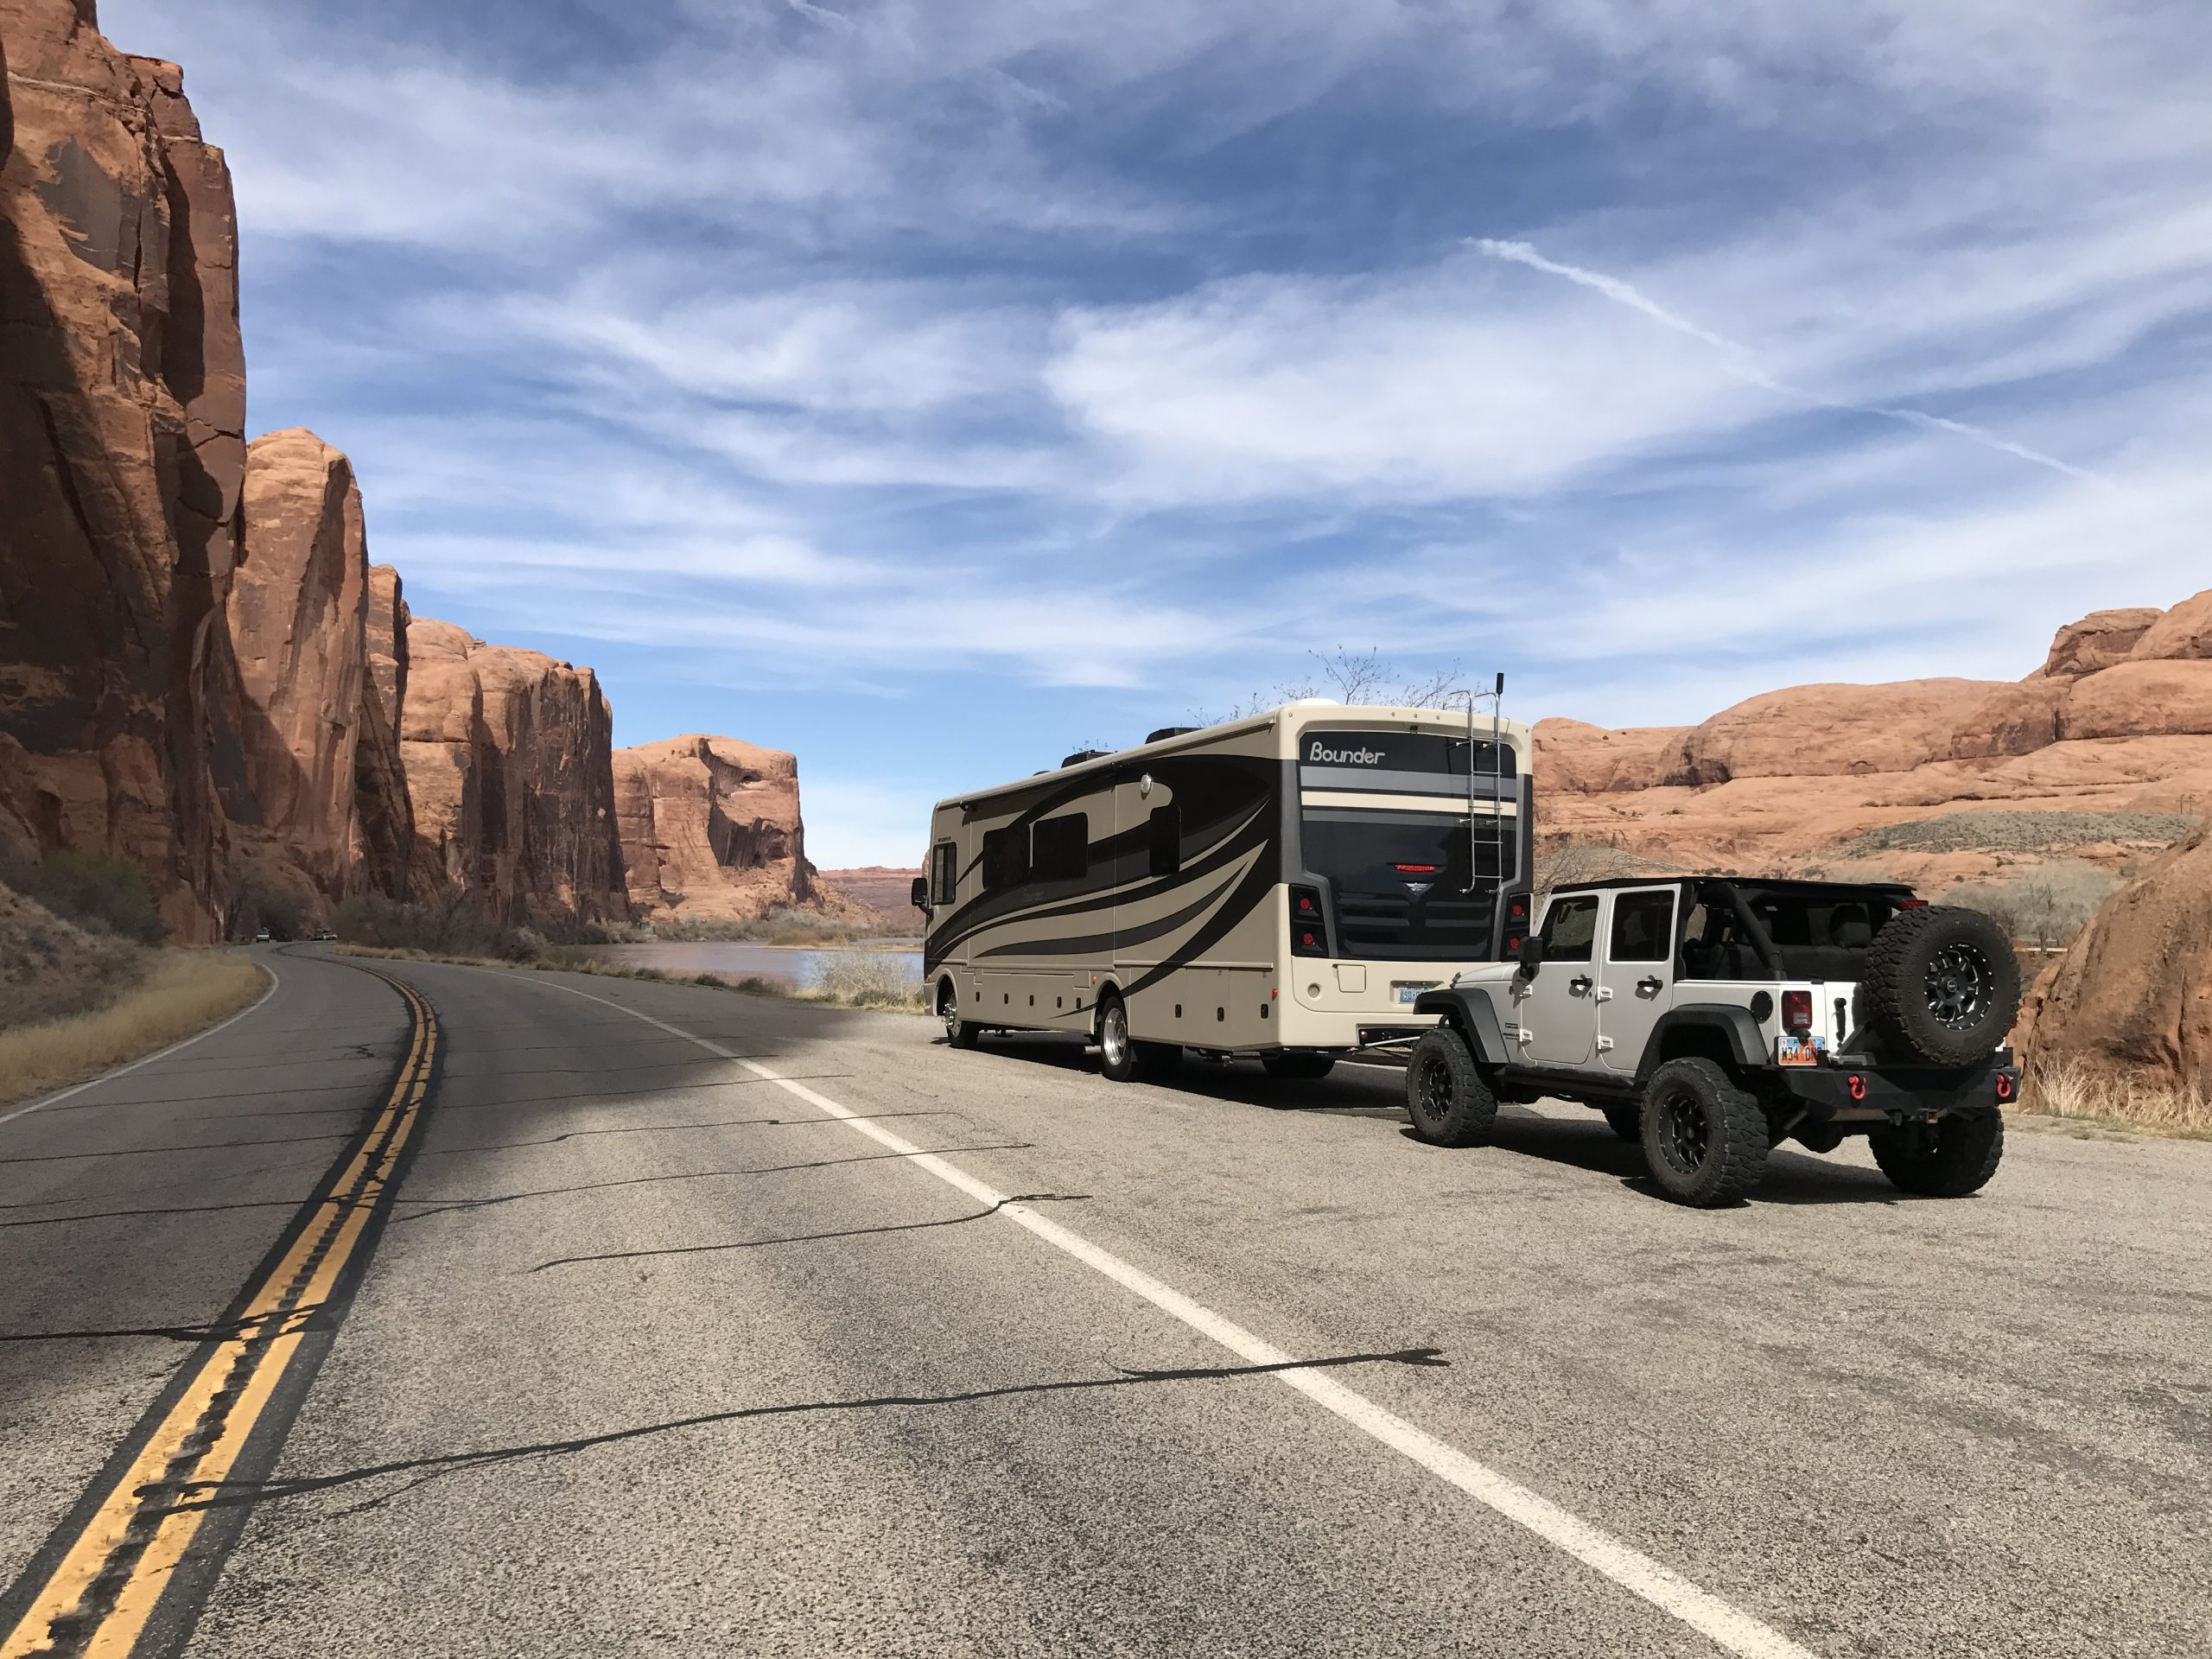 Our RV Setup